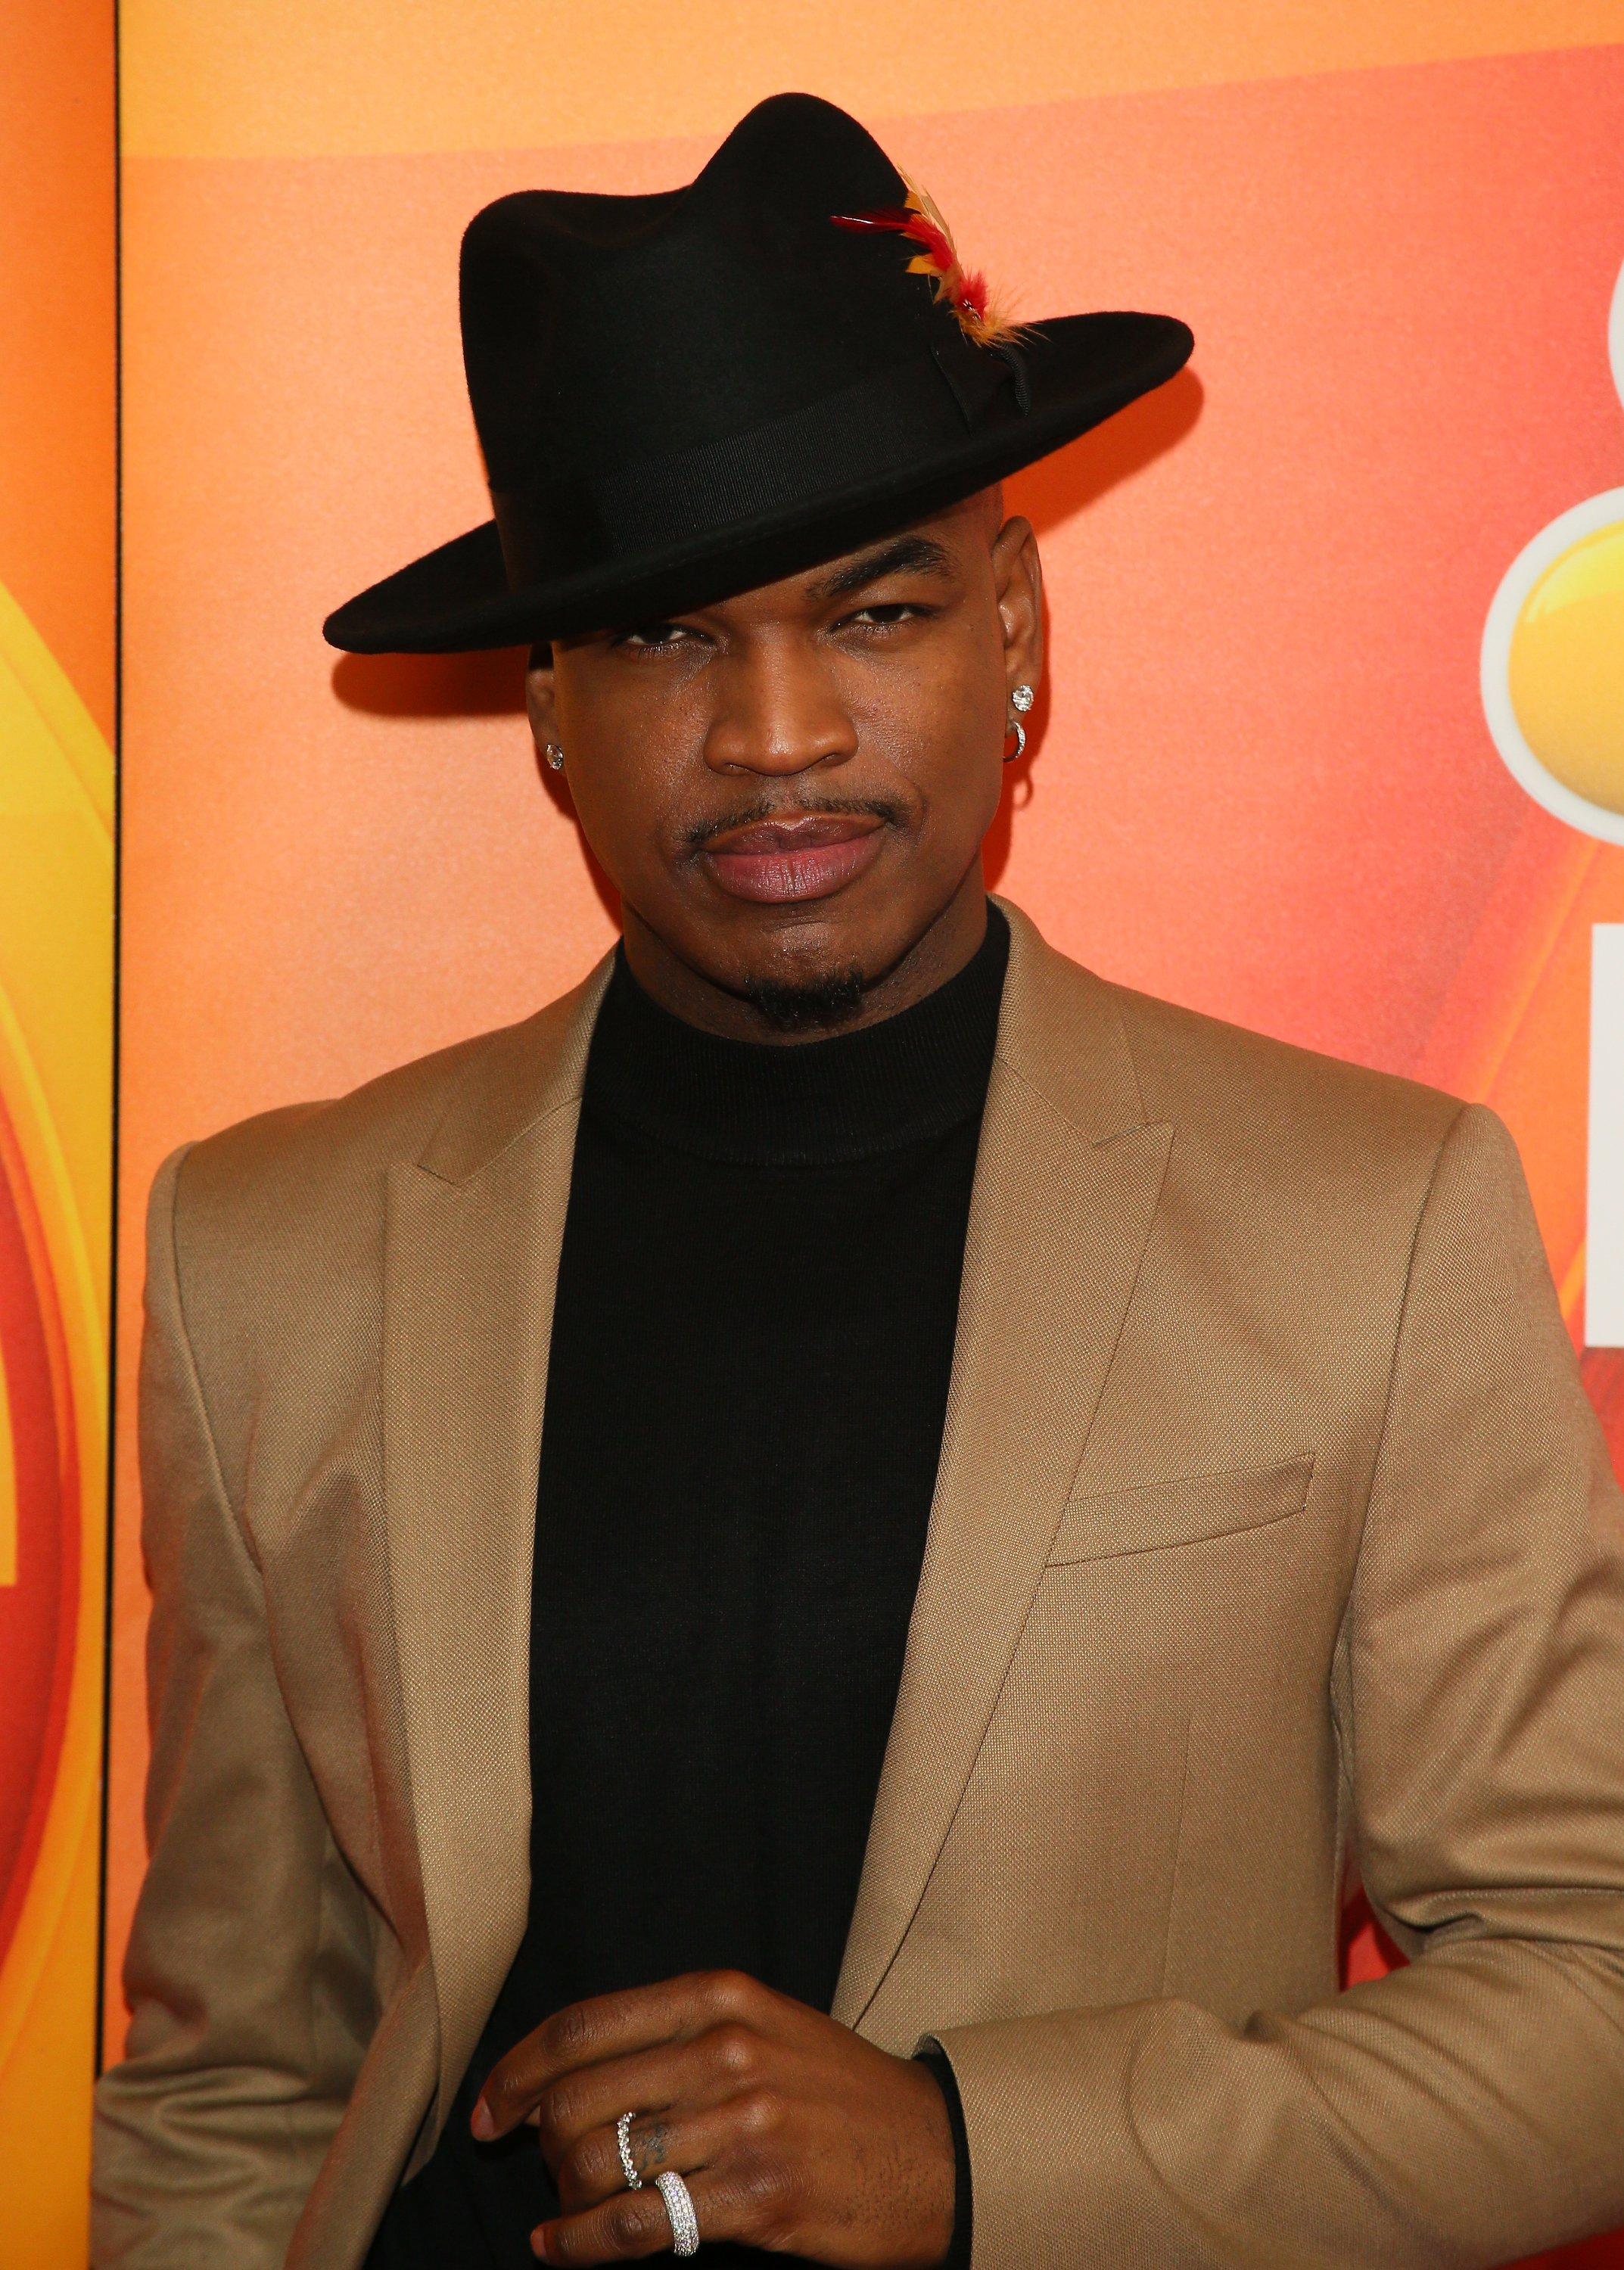 Ne-Yo poses at NBC's Los Angeles mid-season press junket on February 20, 2019 in Los Angeles, California.   Source: Getty Images